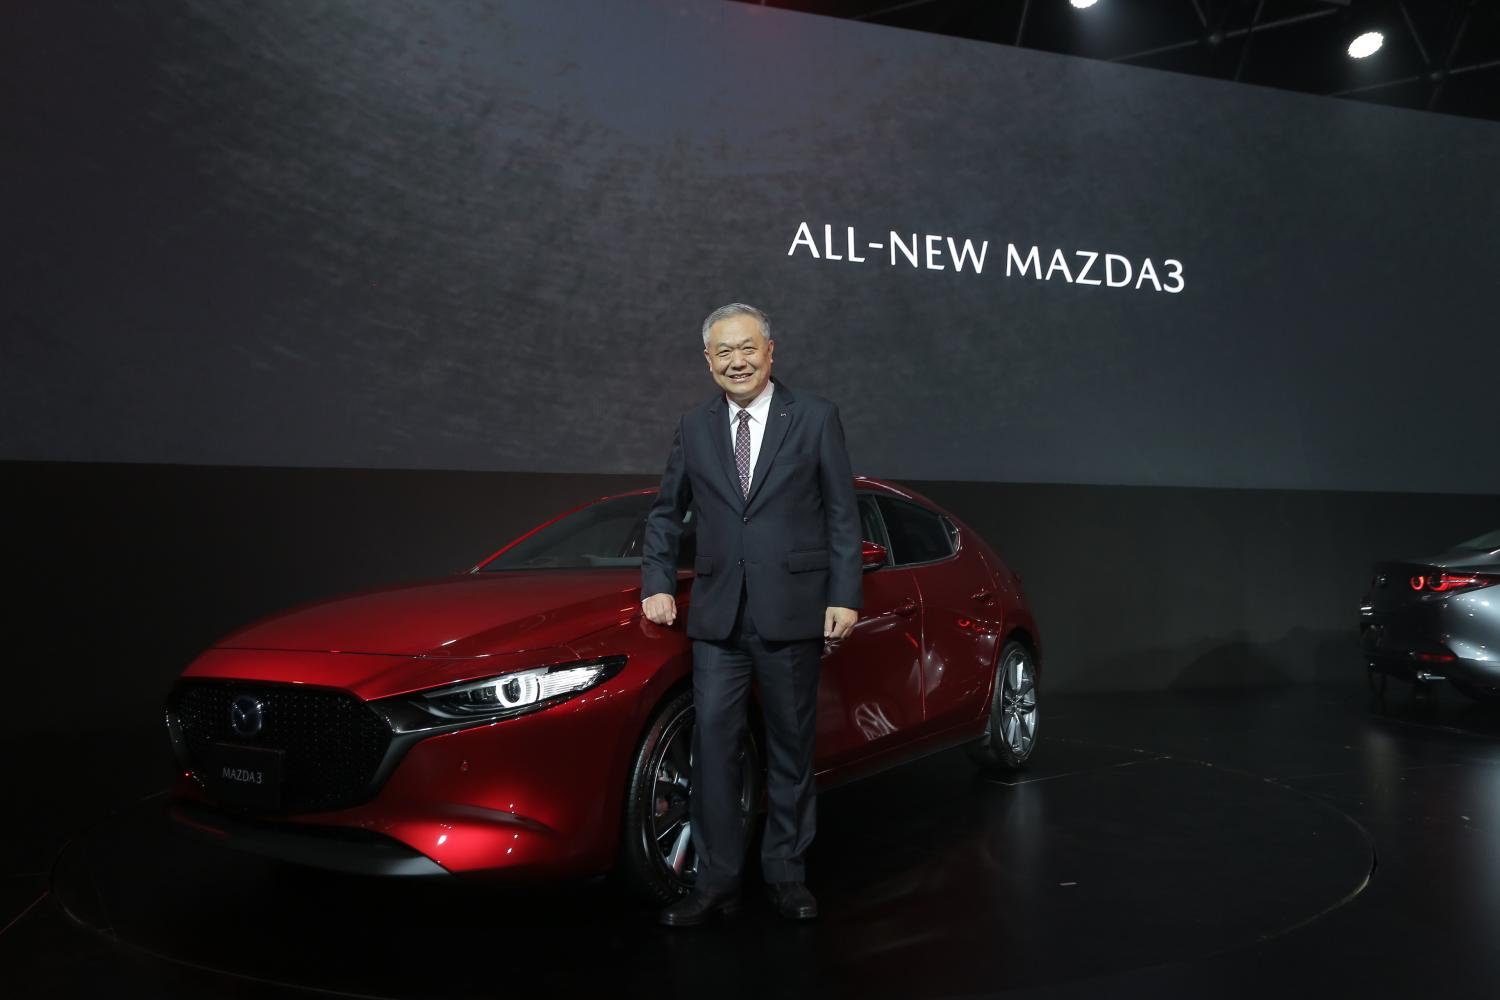 Chanchai Trakarnudomsuk, president of Mazda Sales Thailand is standing with all-new Mazda 3, expecting to sell 7,000 cars for Mazda 3 annually amid a bearish sentiment of local car market.